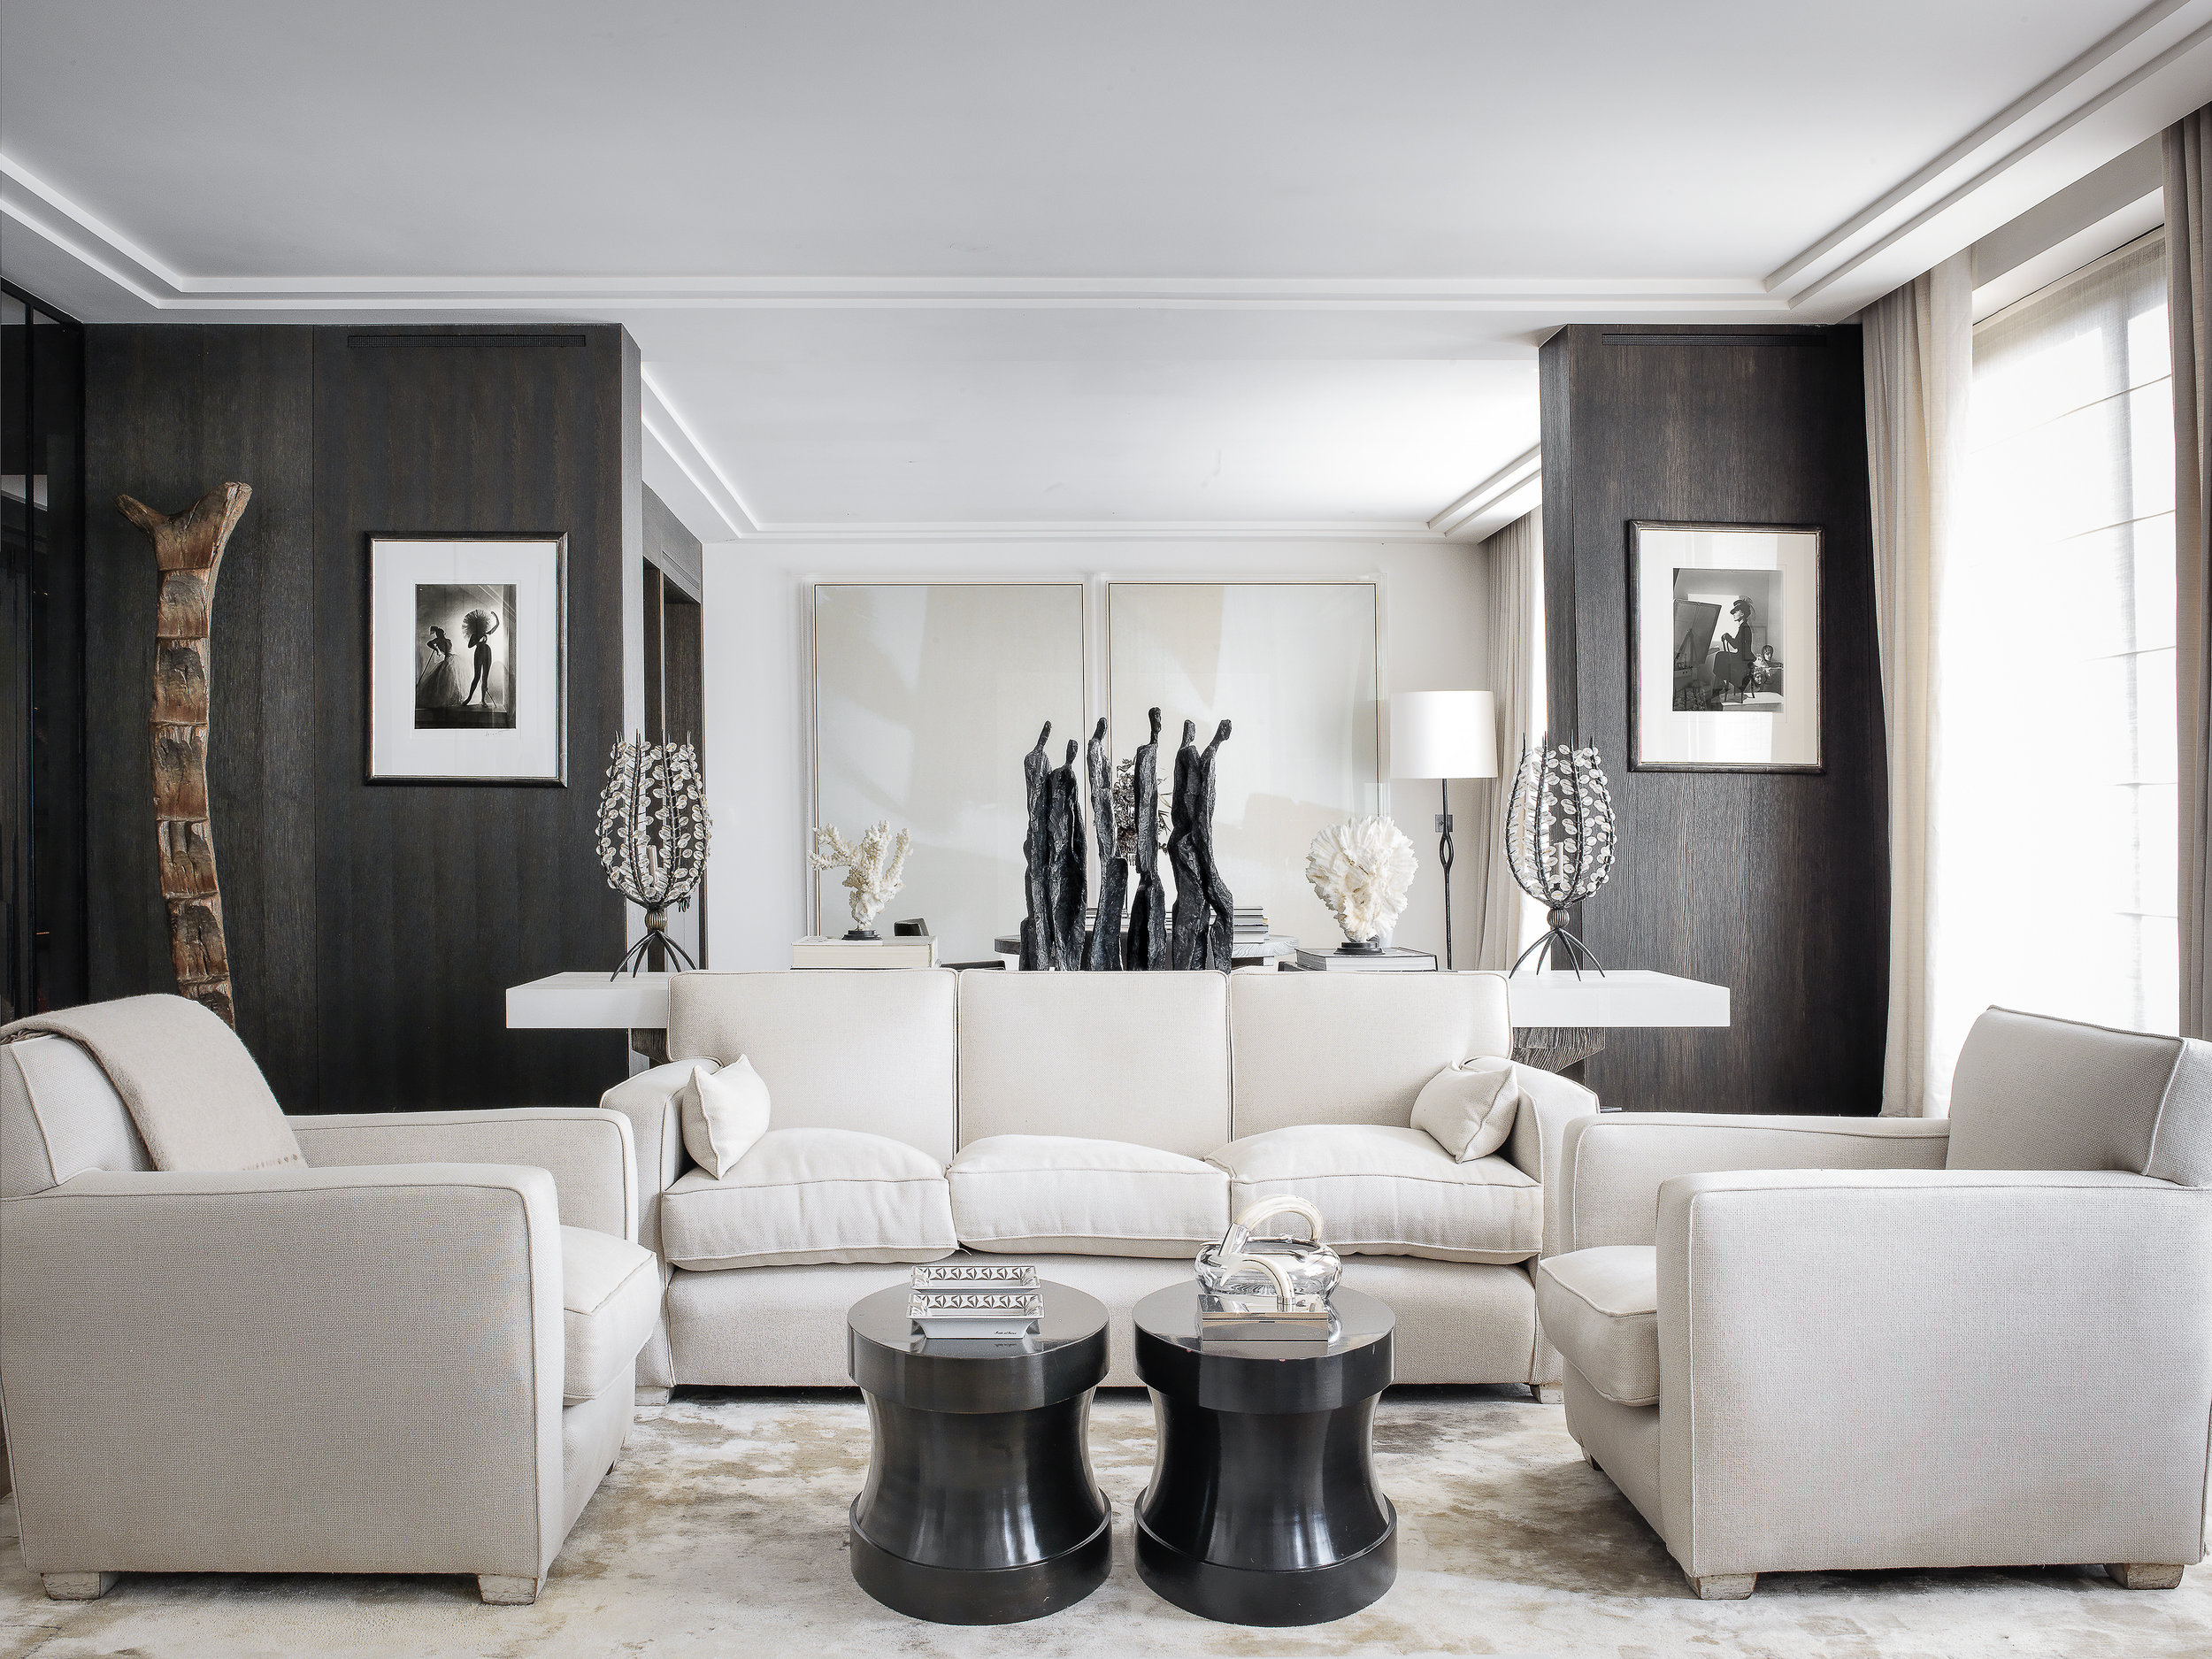 Paris Interior Designers: The Top 10 paris interior designers Paris Interior Designers: The Top 10 Inspirations for Modern Chairs gilles and boissier